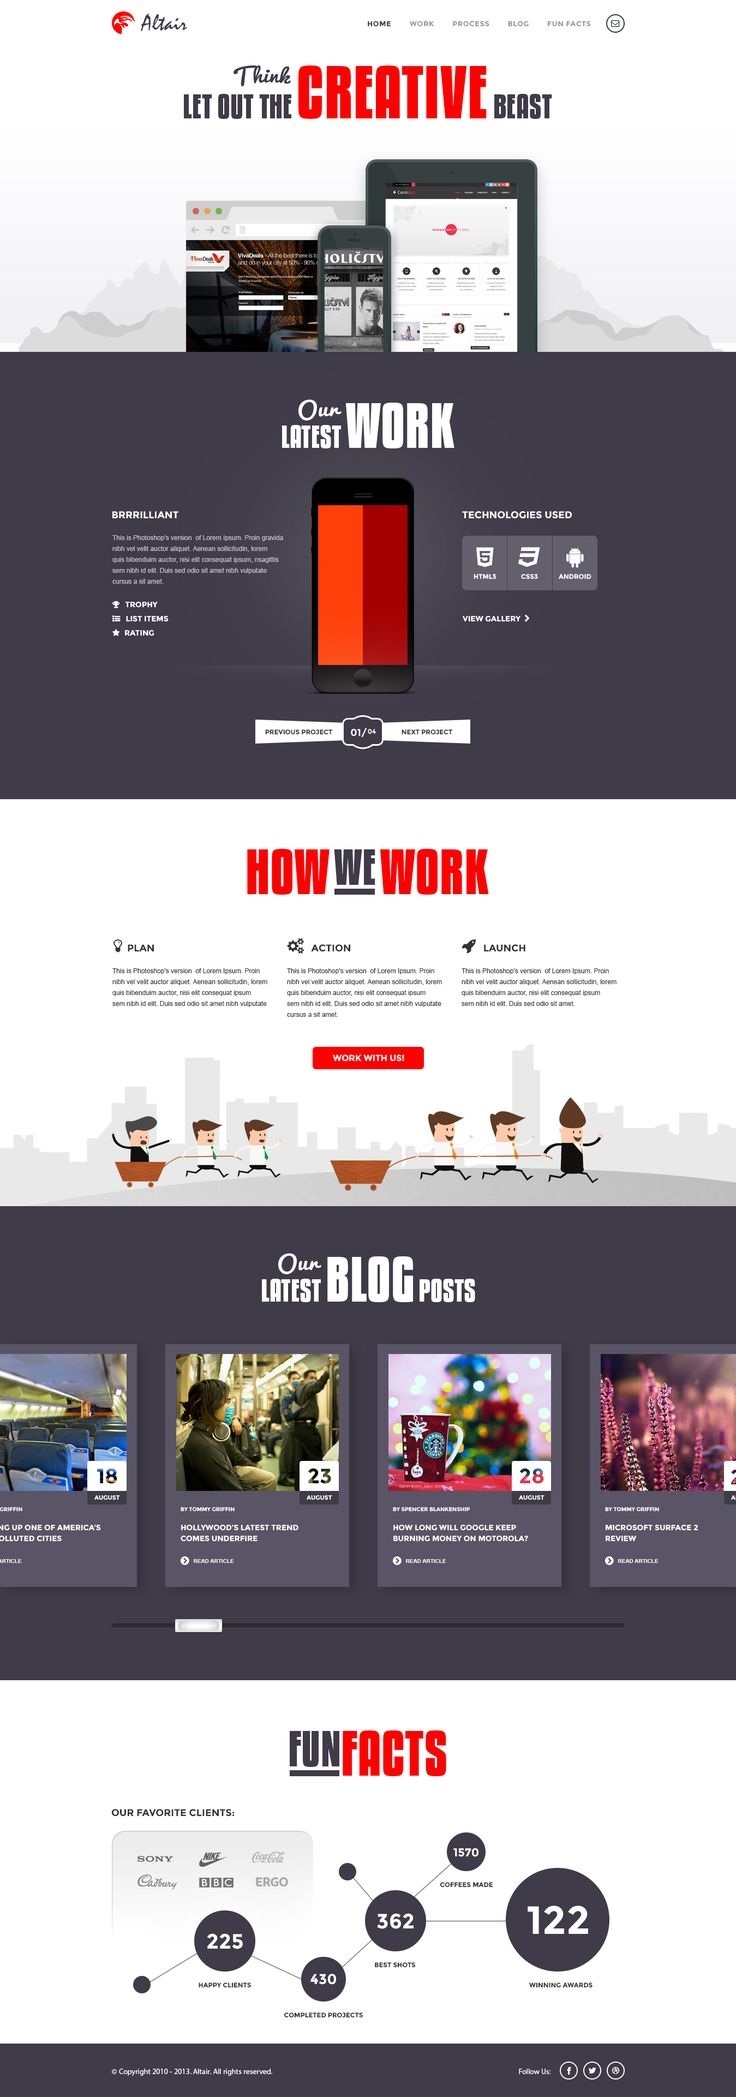 Altair - Free PSD Template